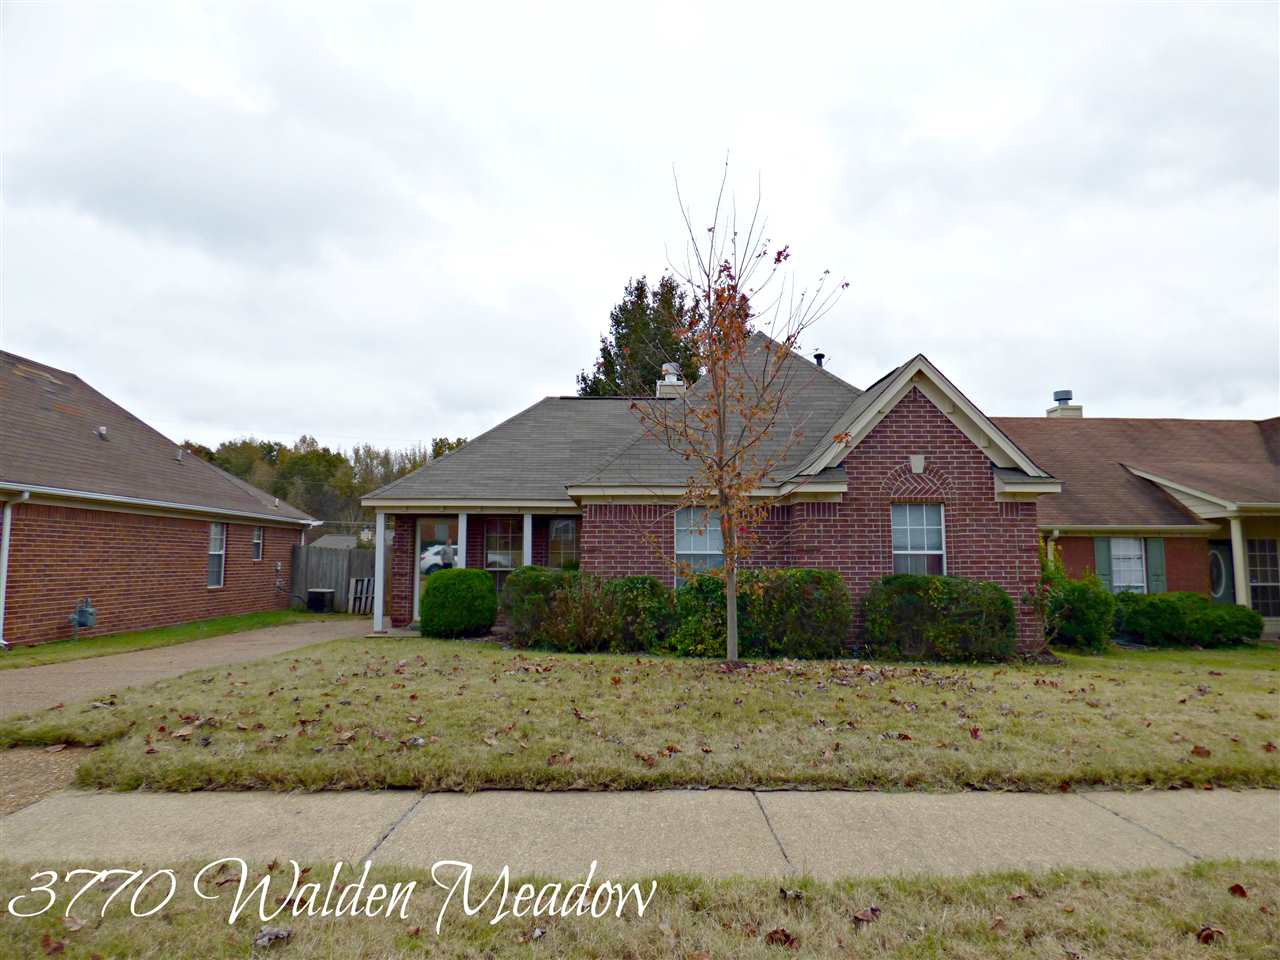 Property for sale at 3770 Walden Meadow Rd, Memphis,  TN 38135